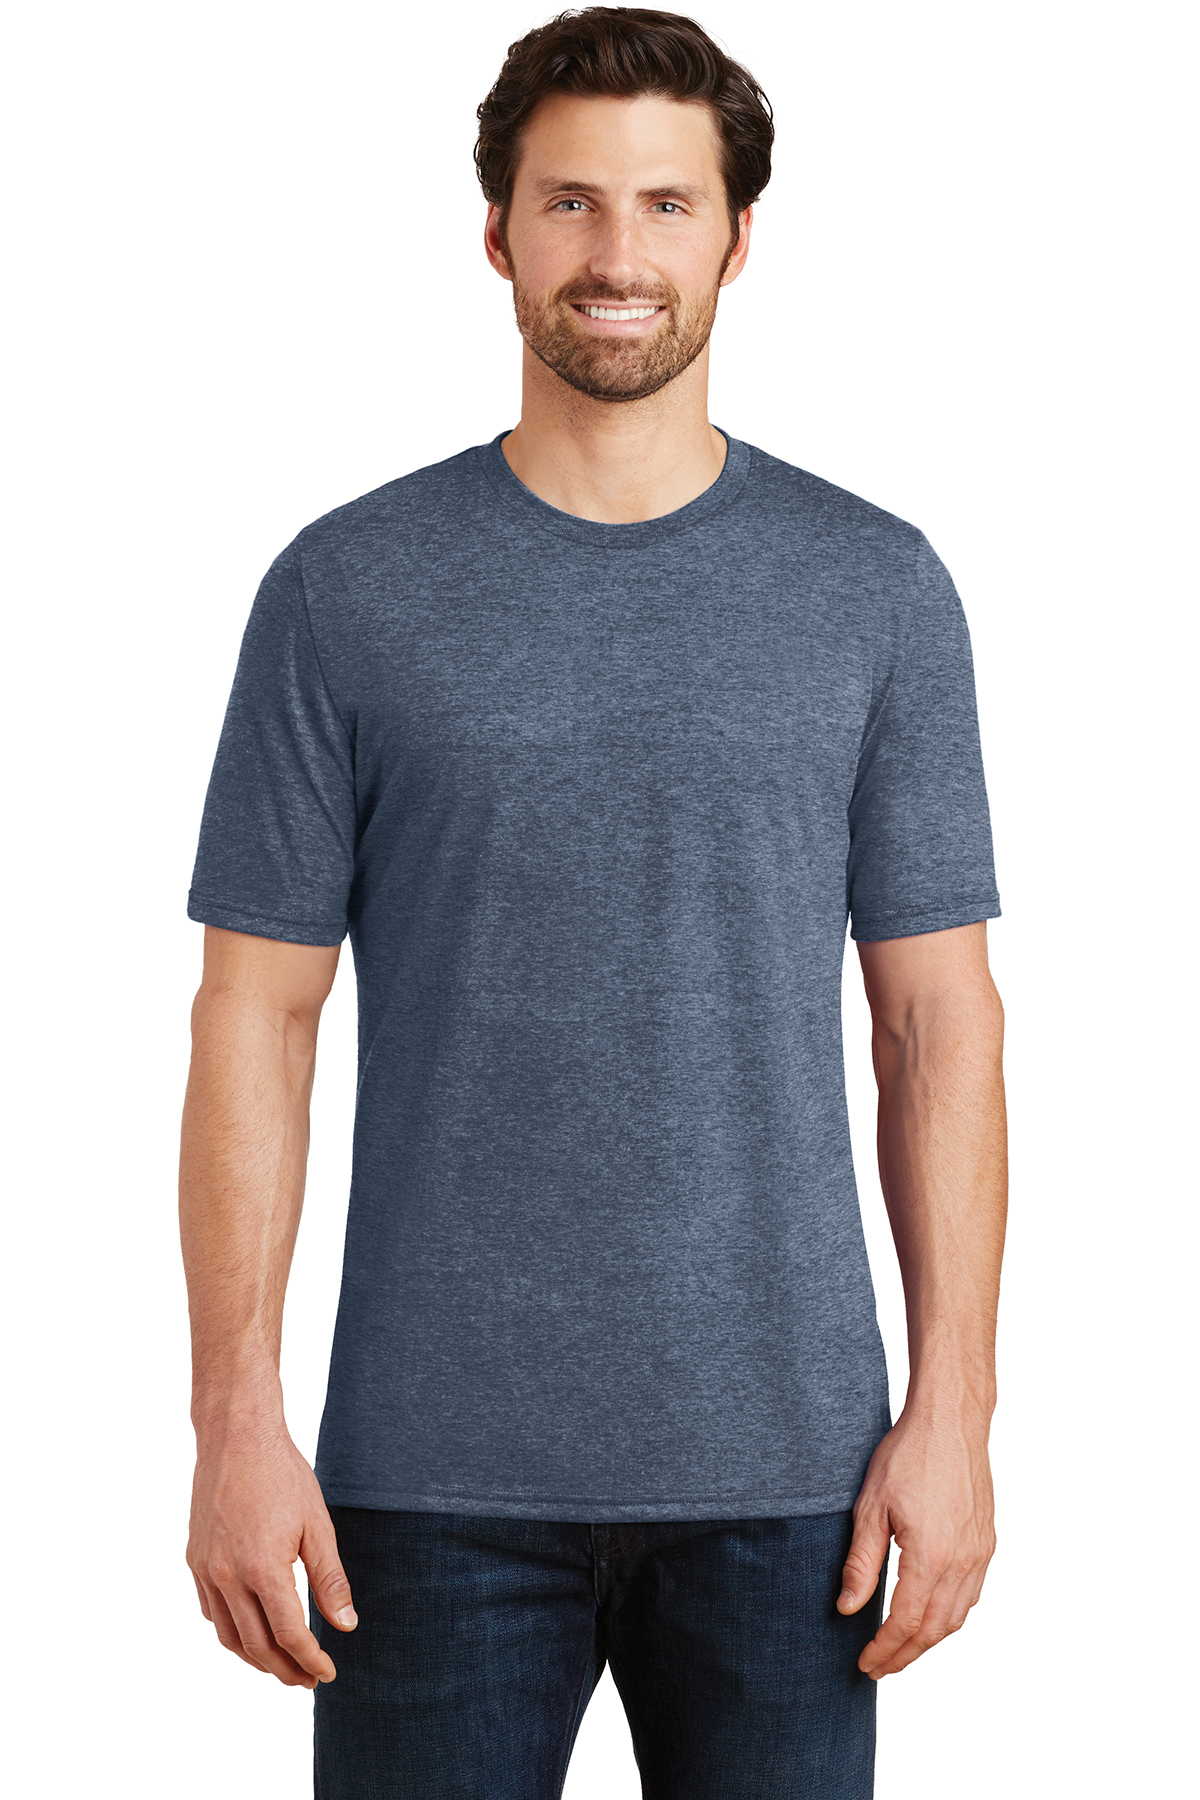 District made mens perfect tri crew tee fashion t for The queensboro shirt company